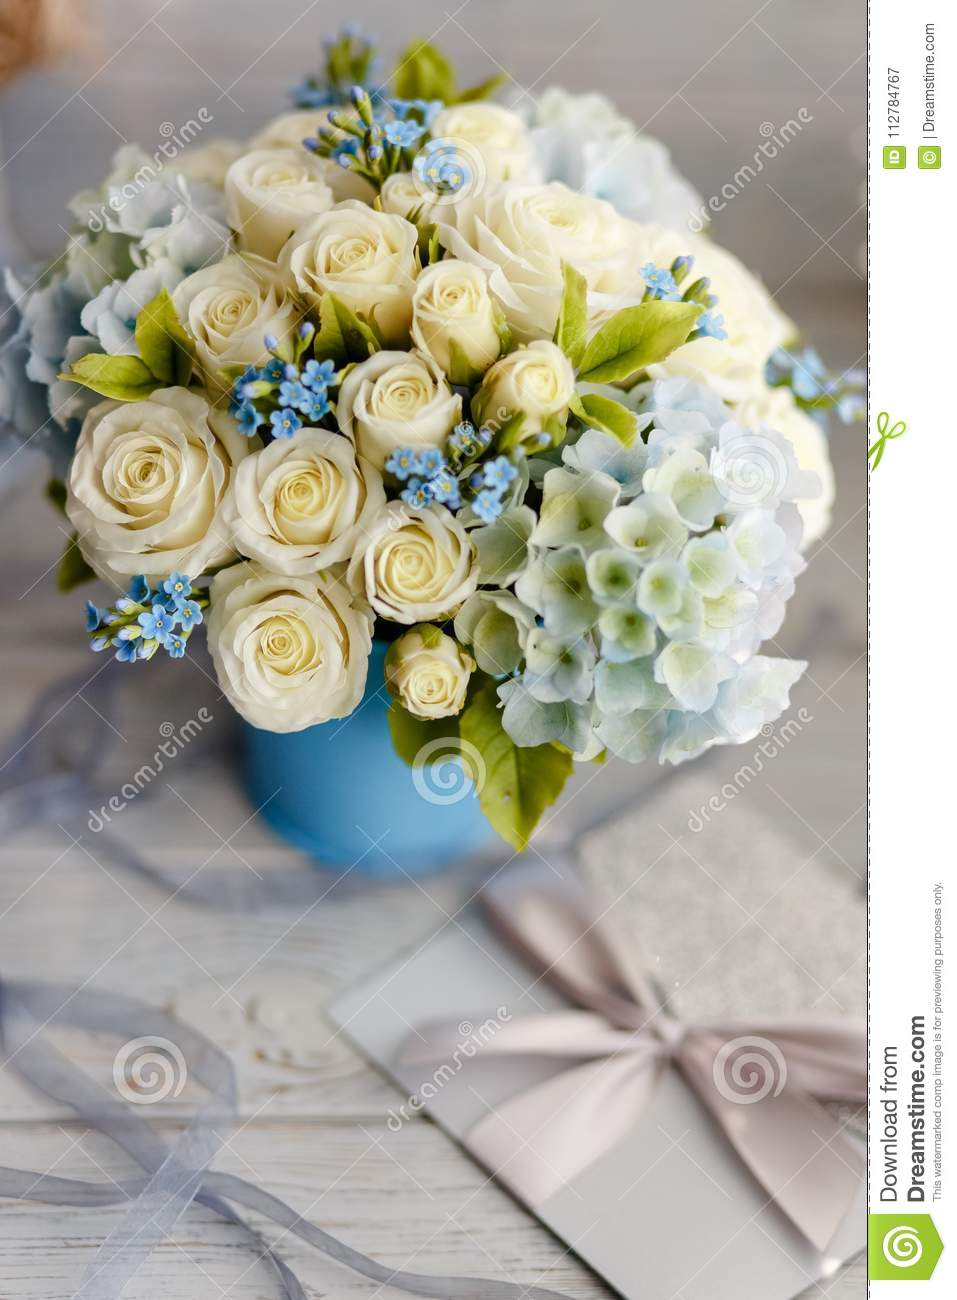 Blue And White Wedding Flowers Stock Image Image Of Candy Cake